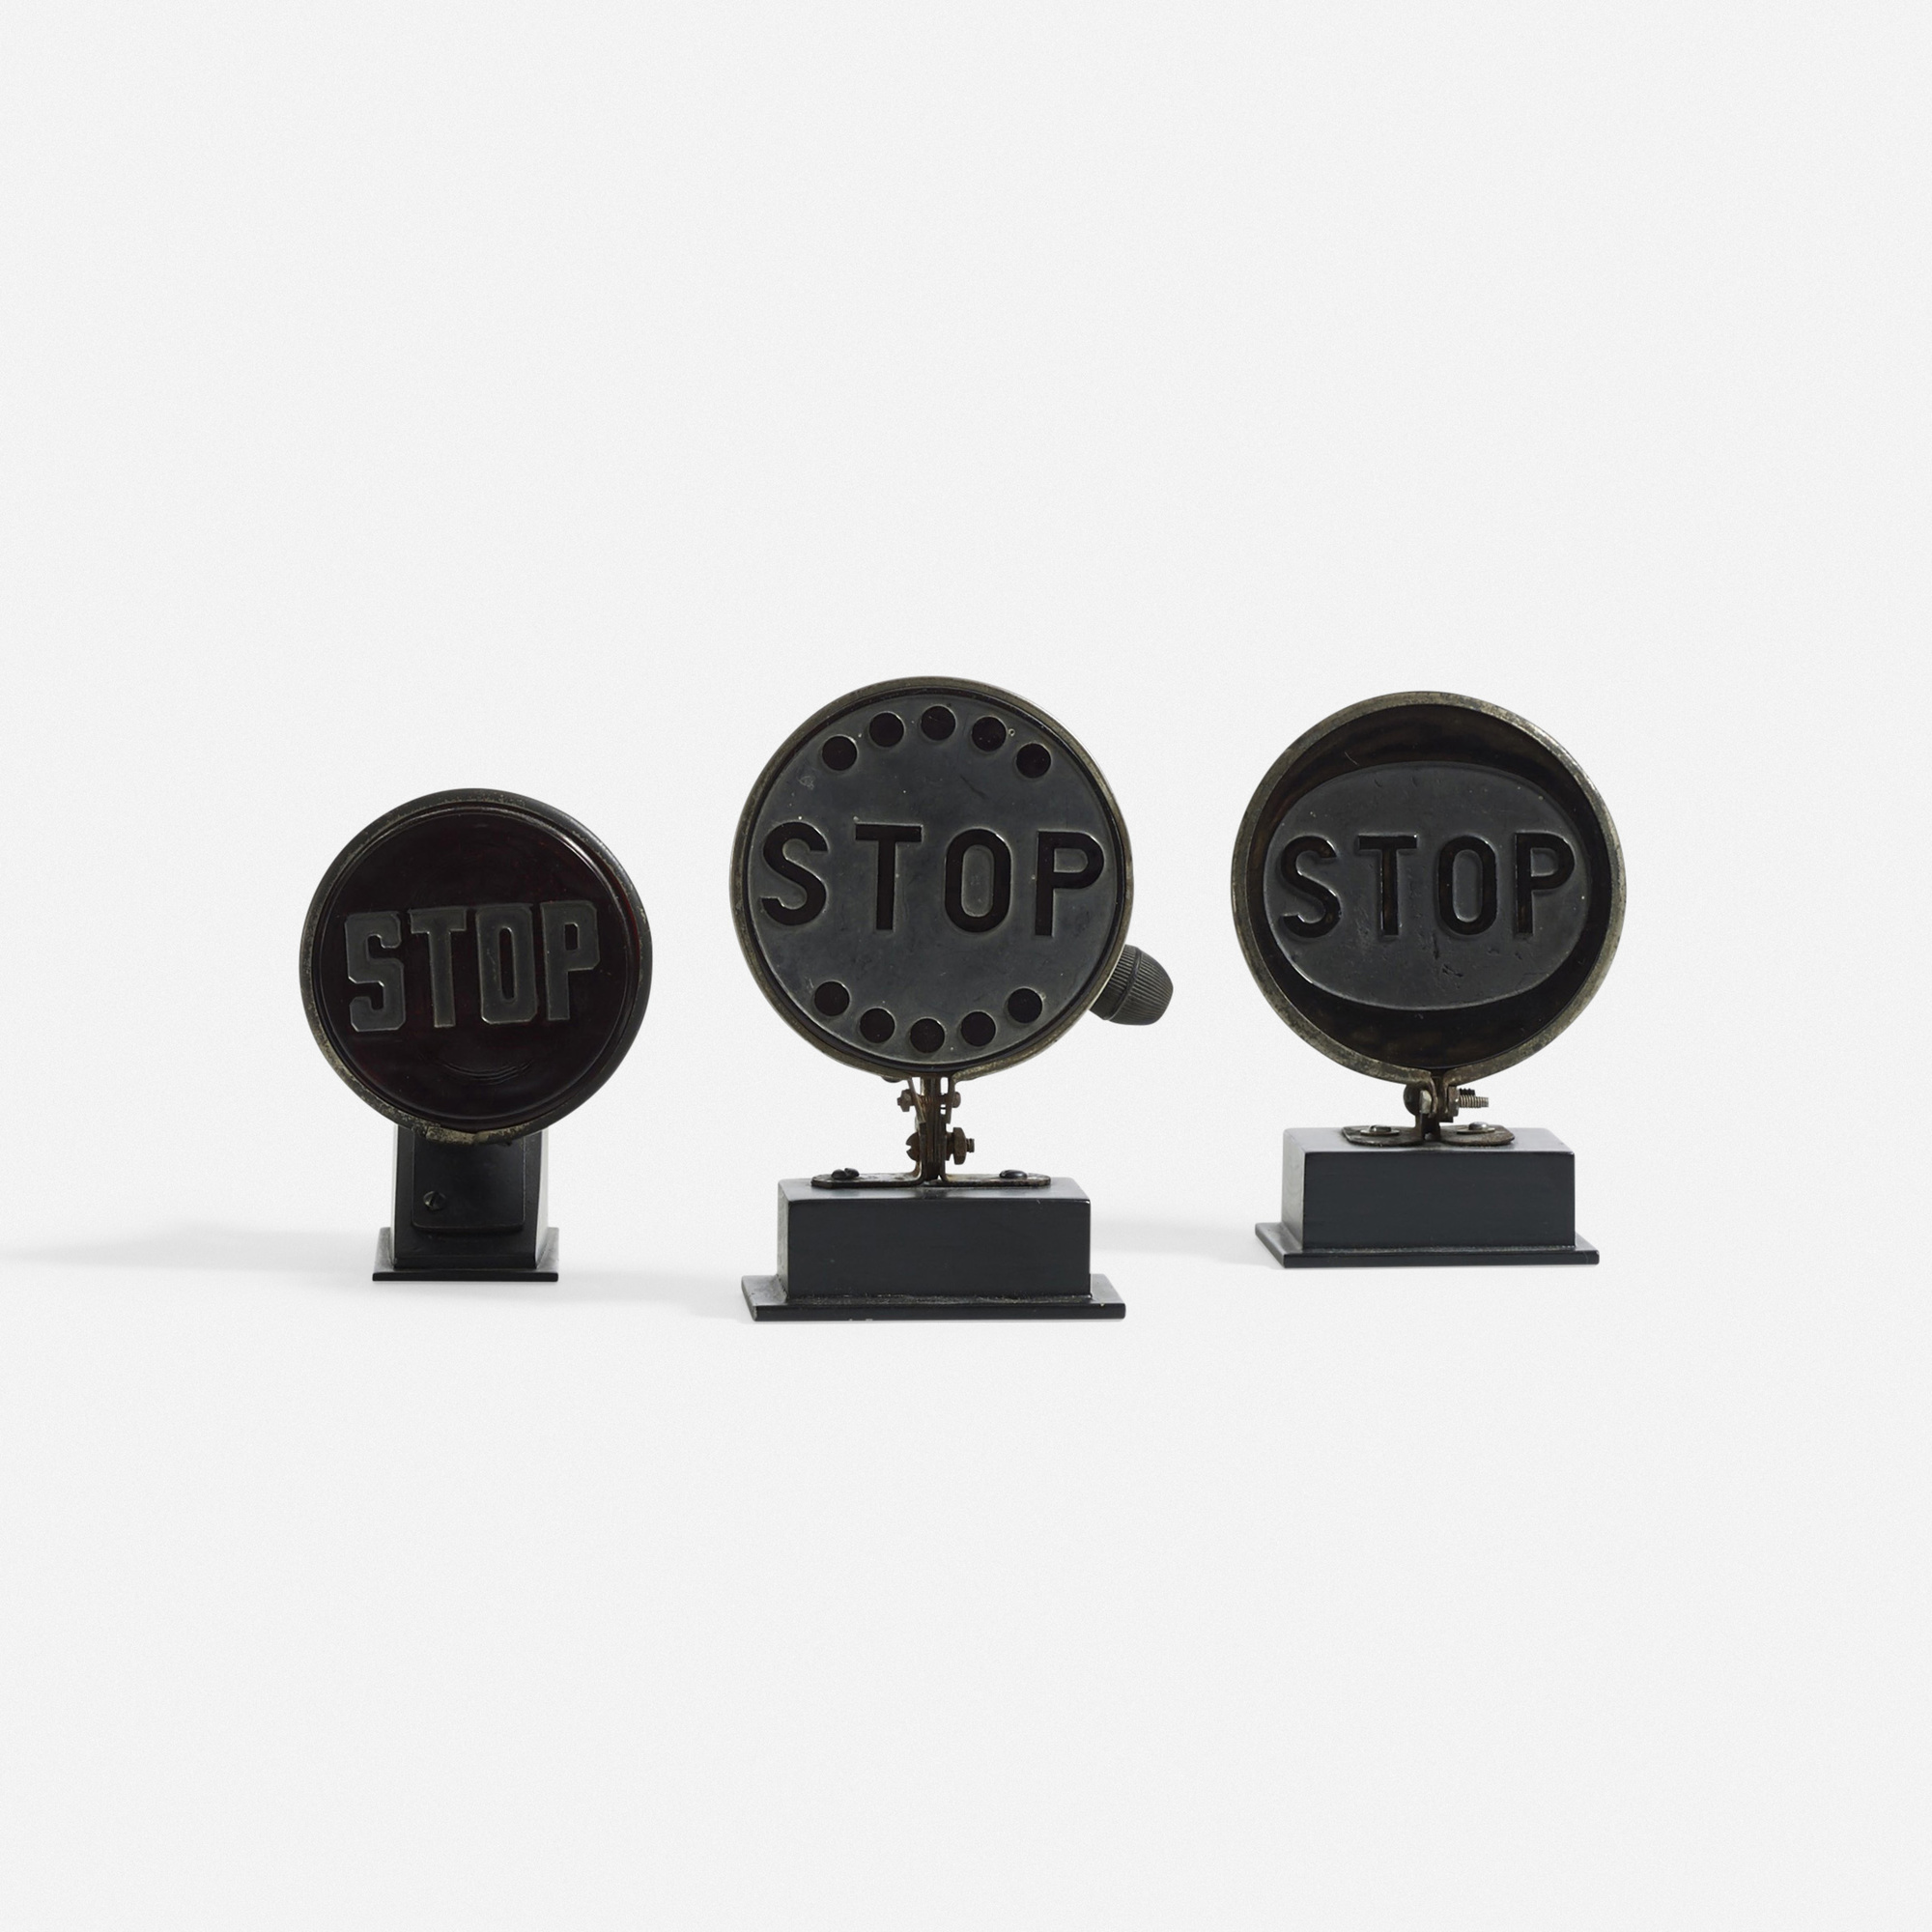 388: American / Stop signals, set of three (1 of 1)